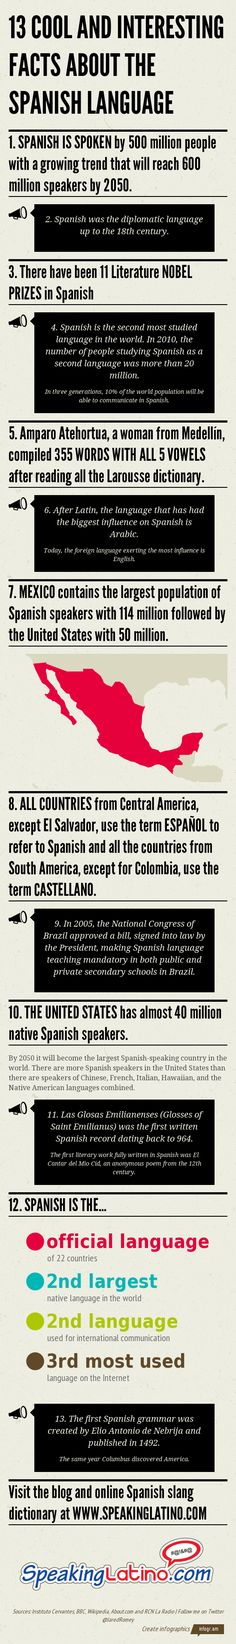 13 Cool Facts about Spanish